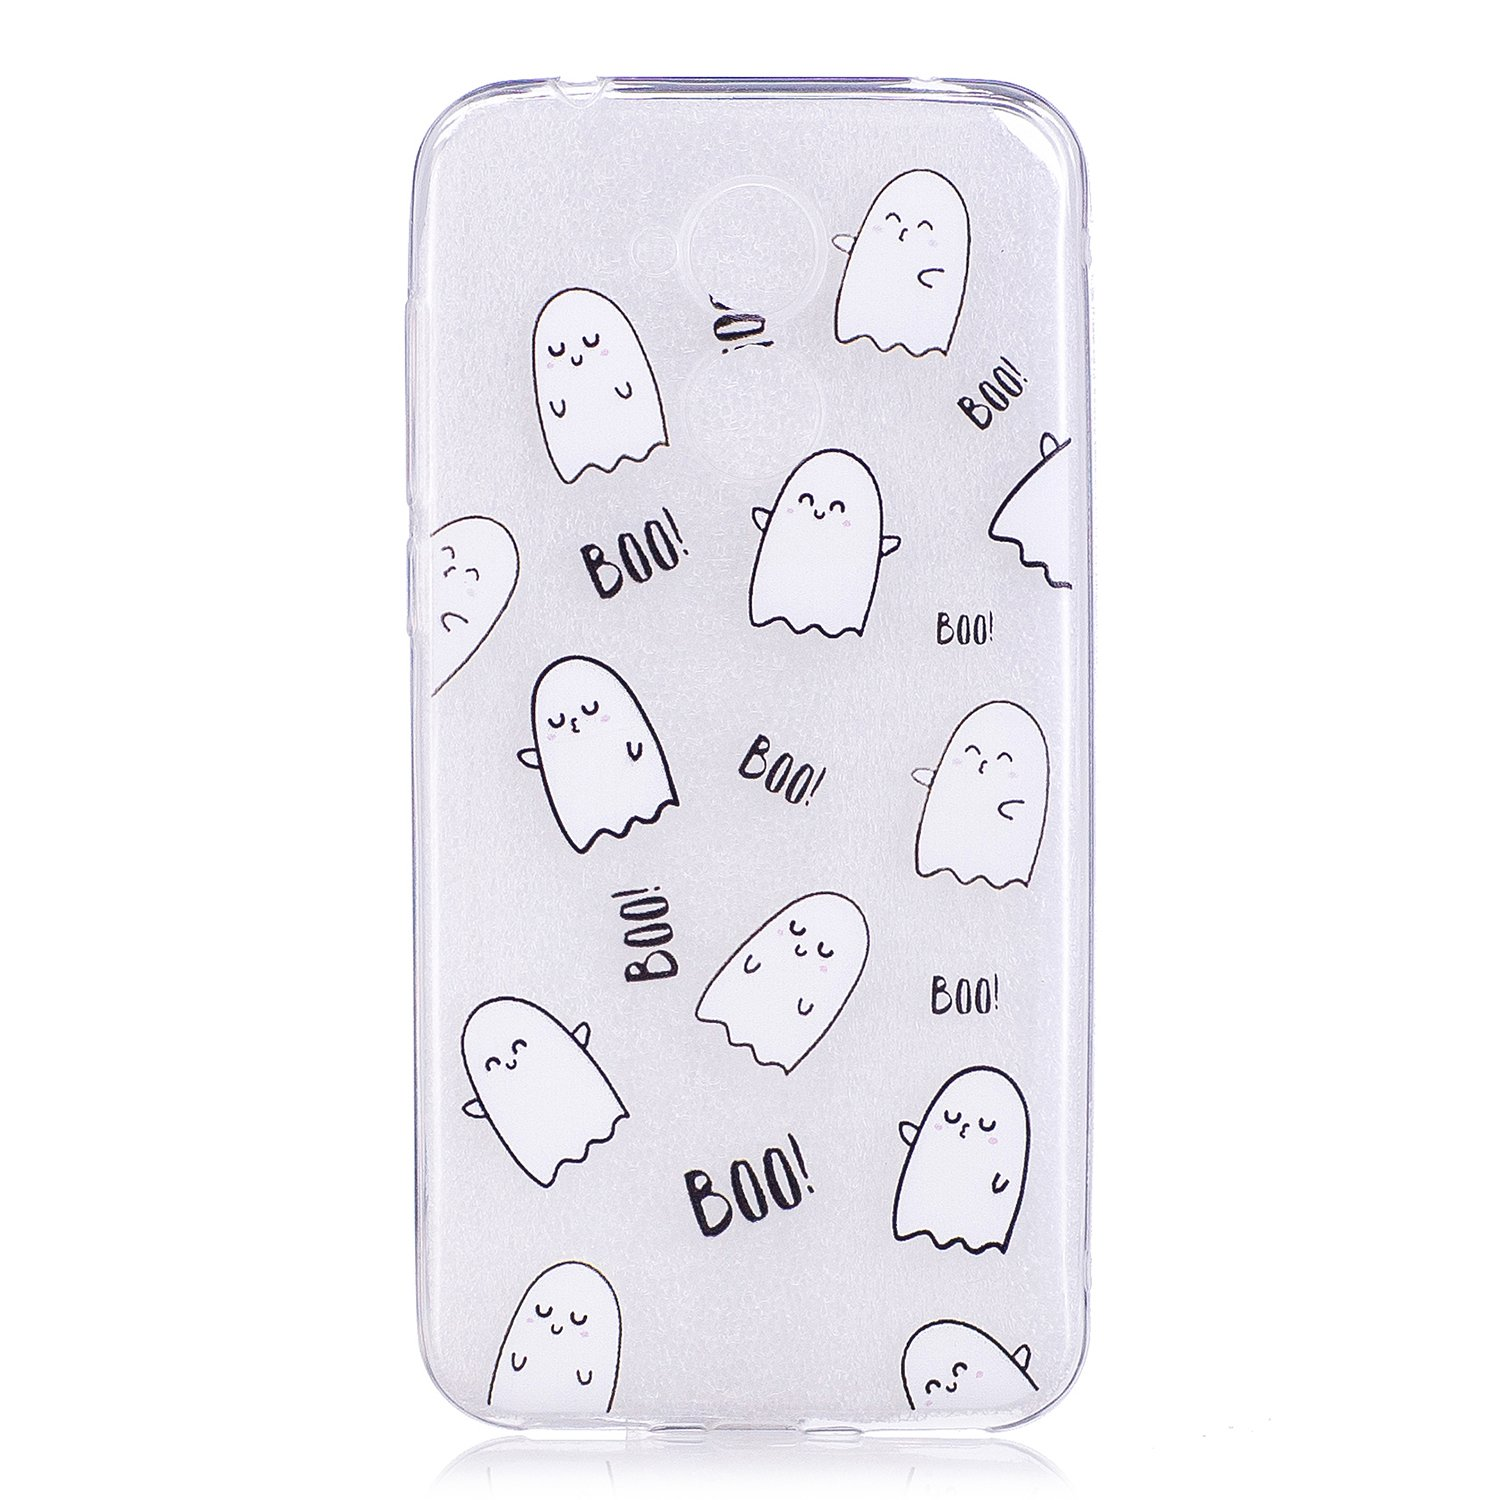 BONROY/® Huawei Honor 6A Coque Housse Etui,Fashion Belle Ultra-Mince Thin Soft Silicone Etui de Protection pour Souple Gel TPU Bumper Poussiere Resistance Anti-Scratch Case Cover Couverture Pour Huawei Honor 6A